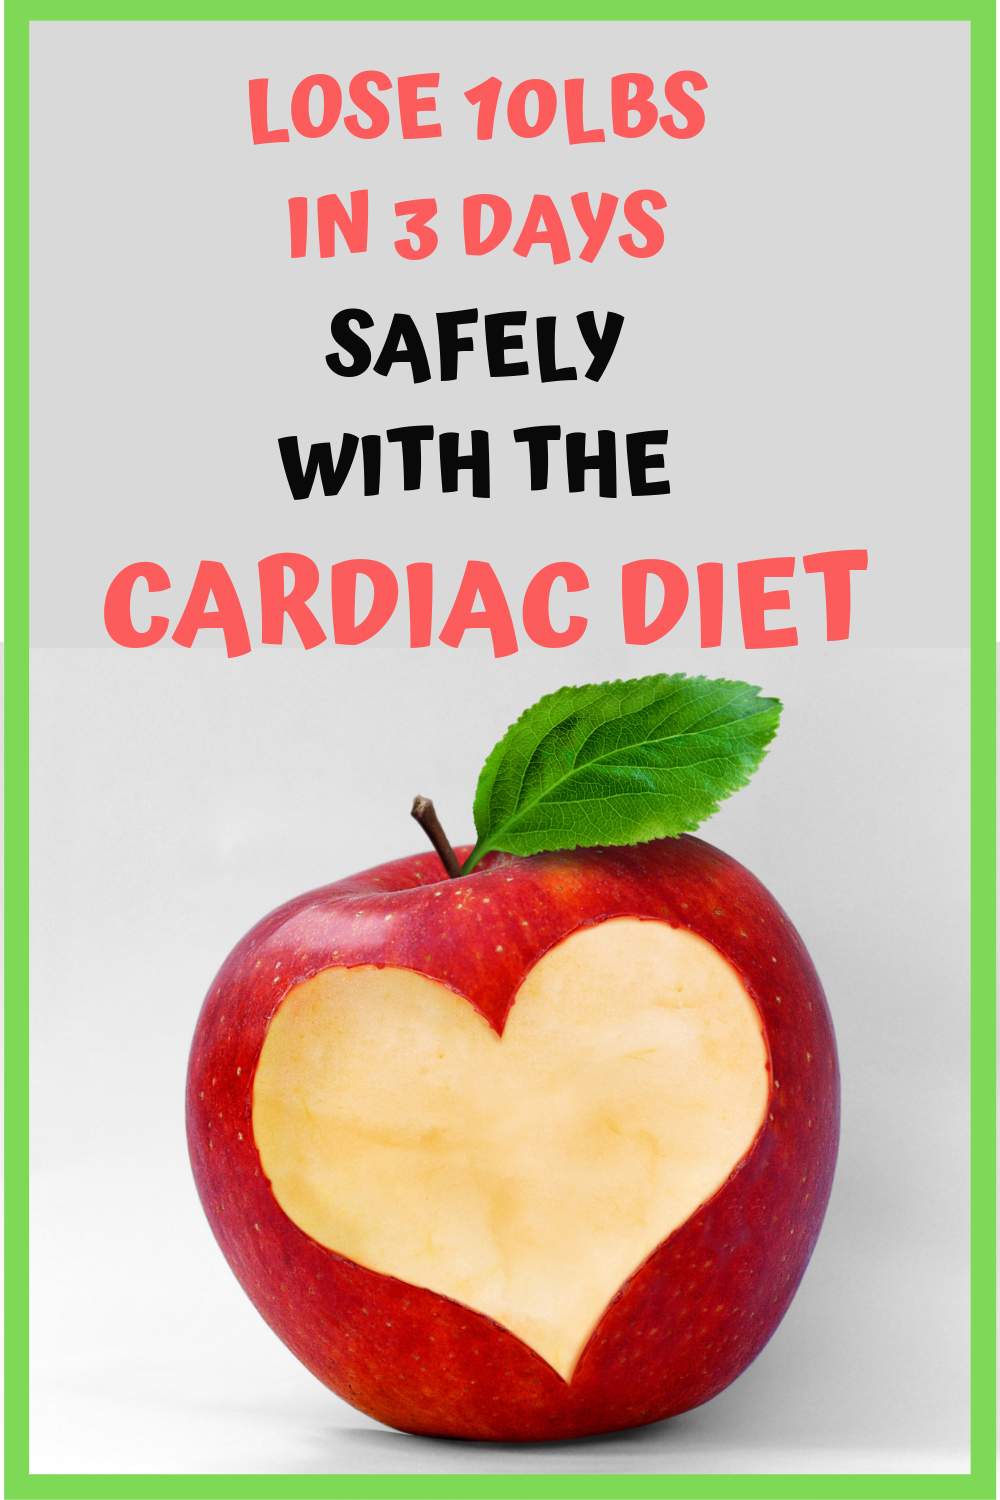 Lose 10lbs in 3 days safely with the cardiac diet